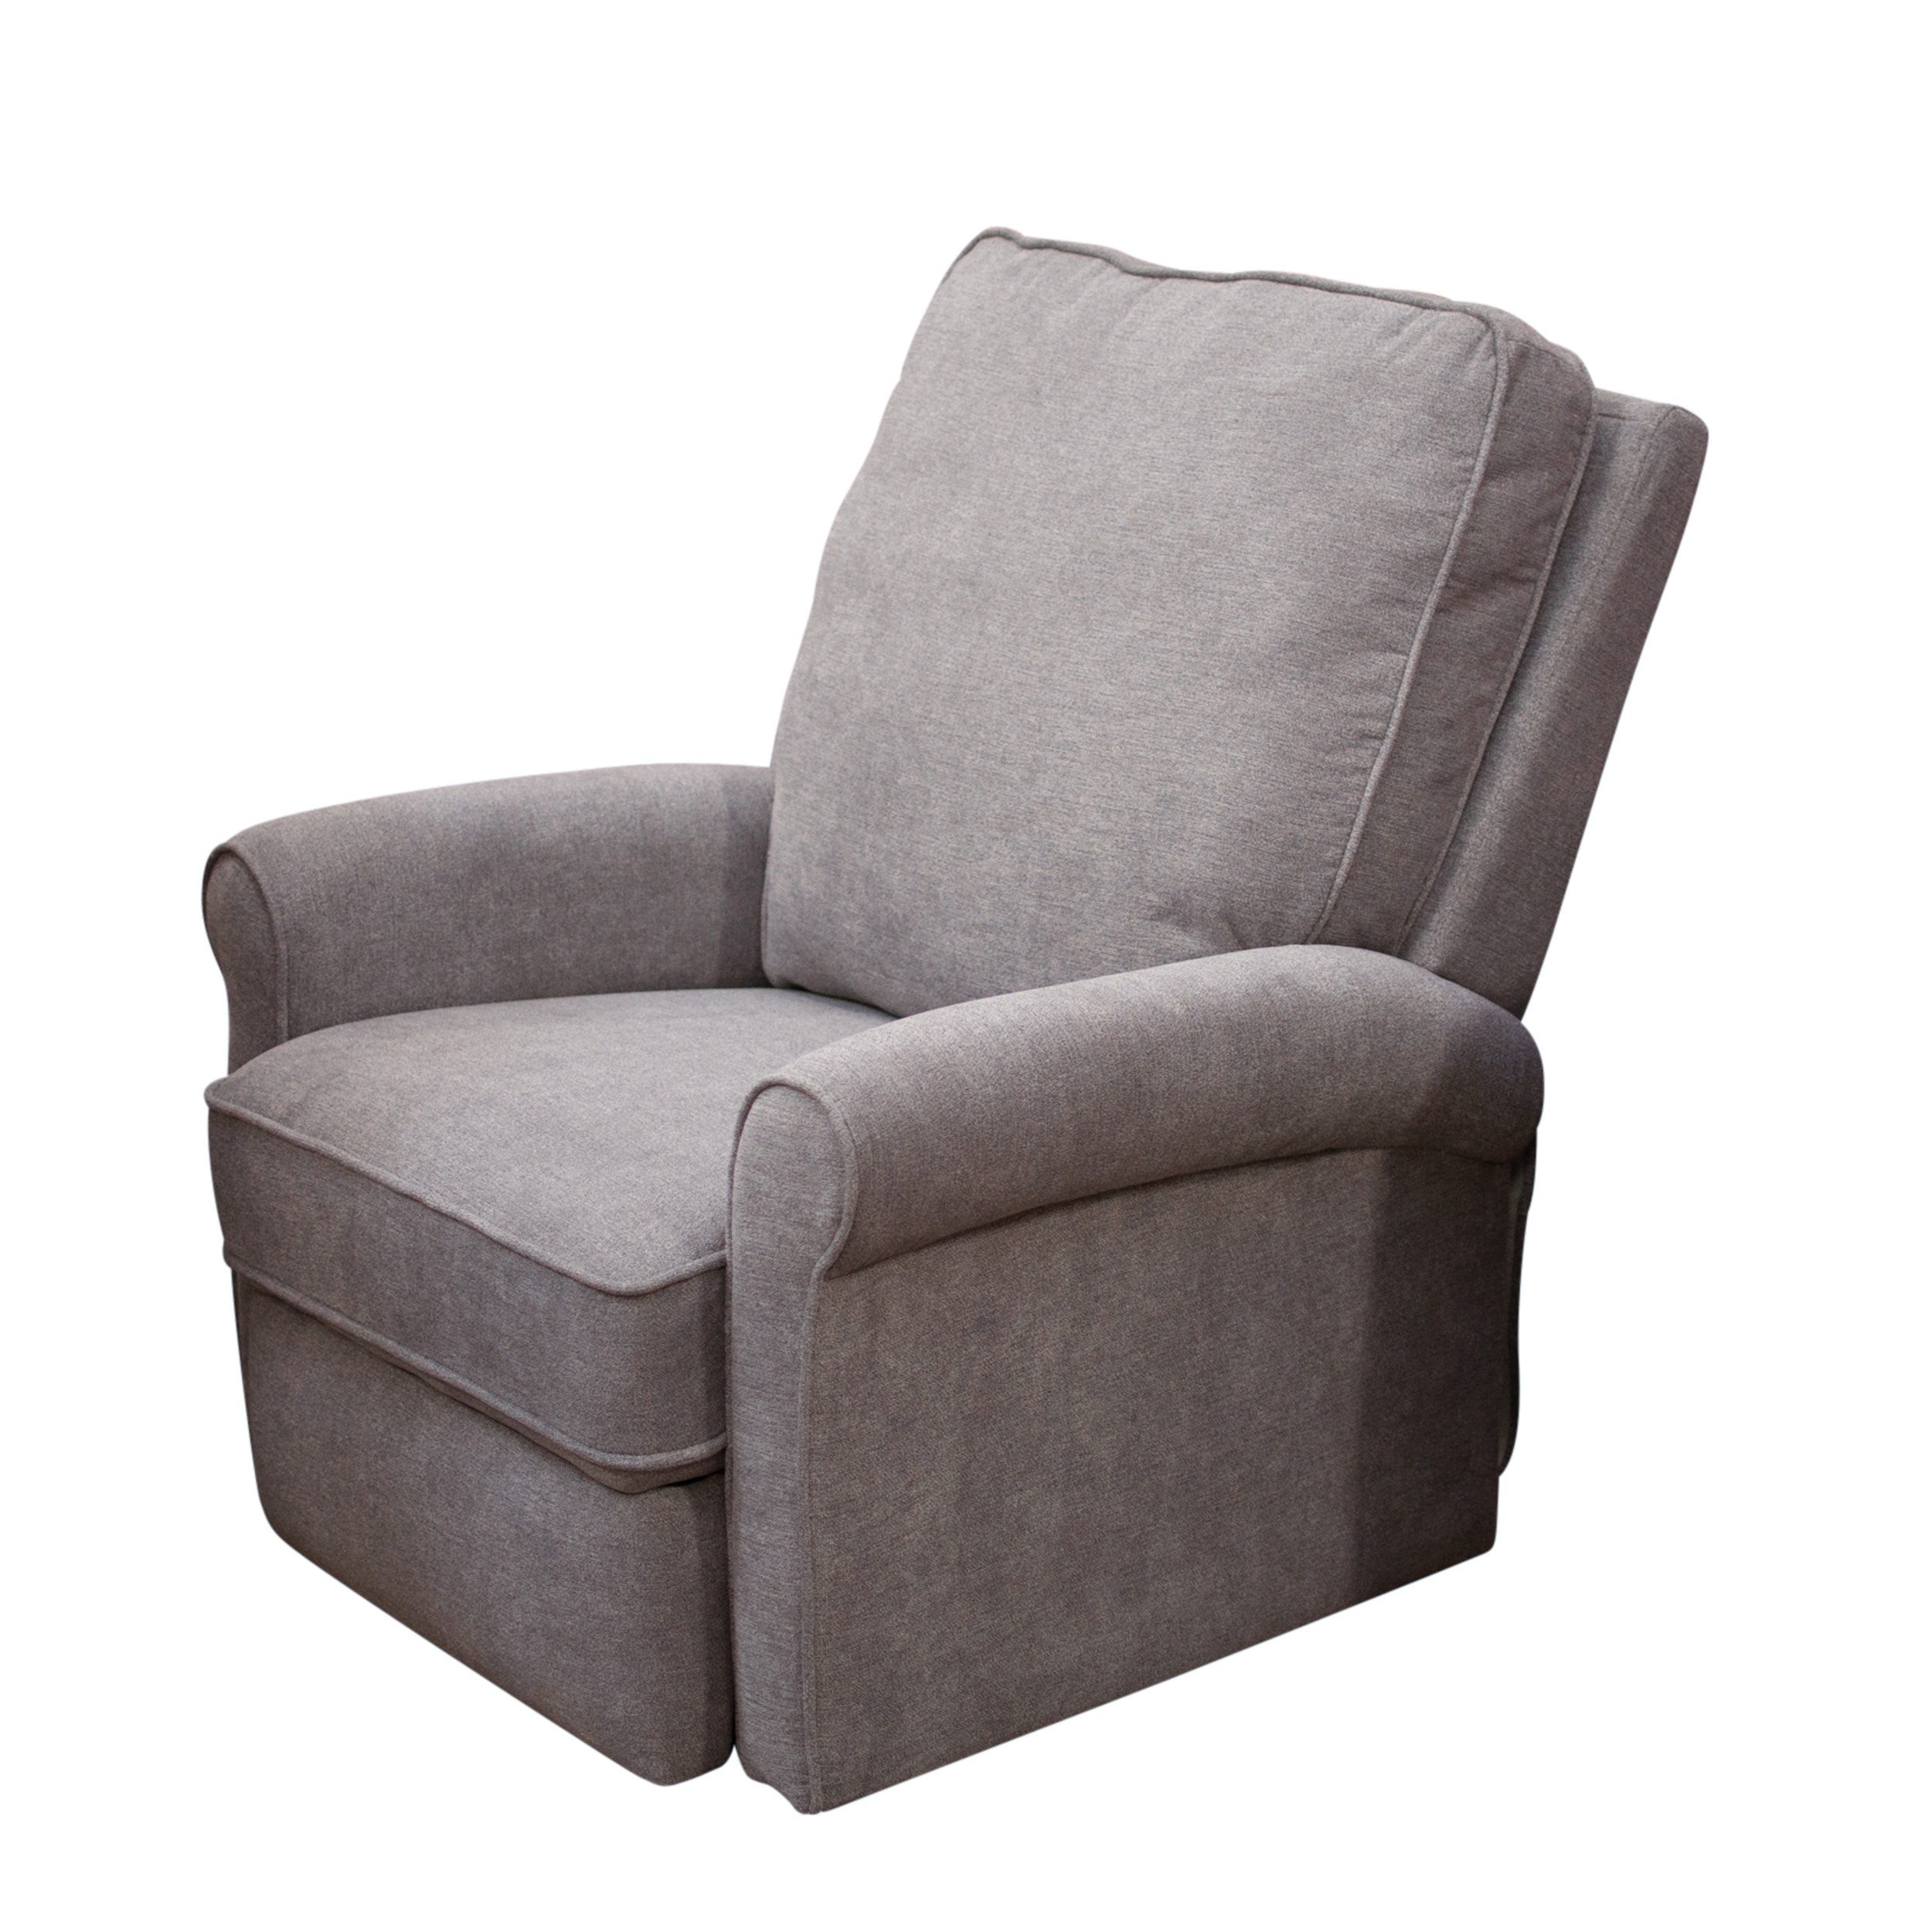 Gray Upholstered Reclining Club Chair, Contemporary